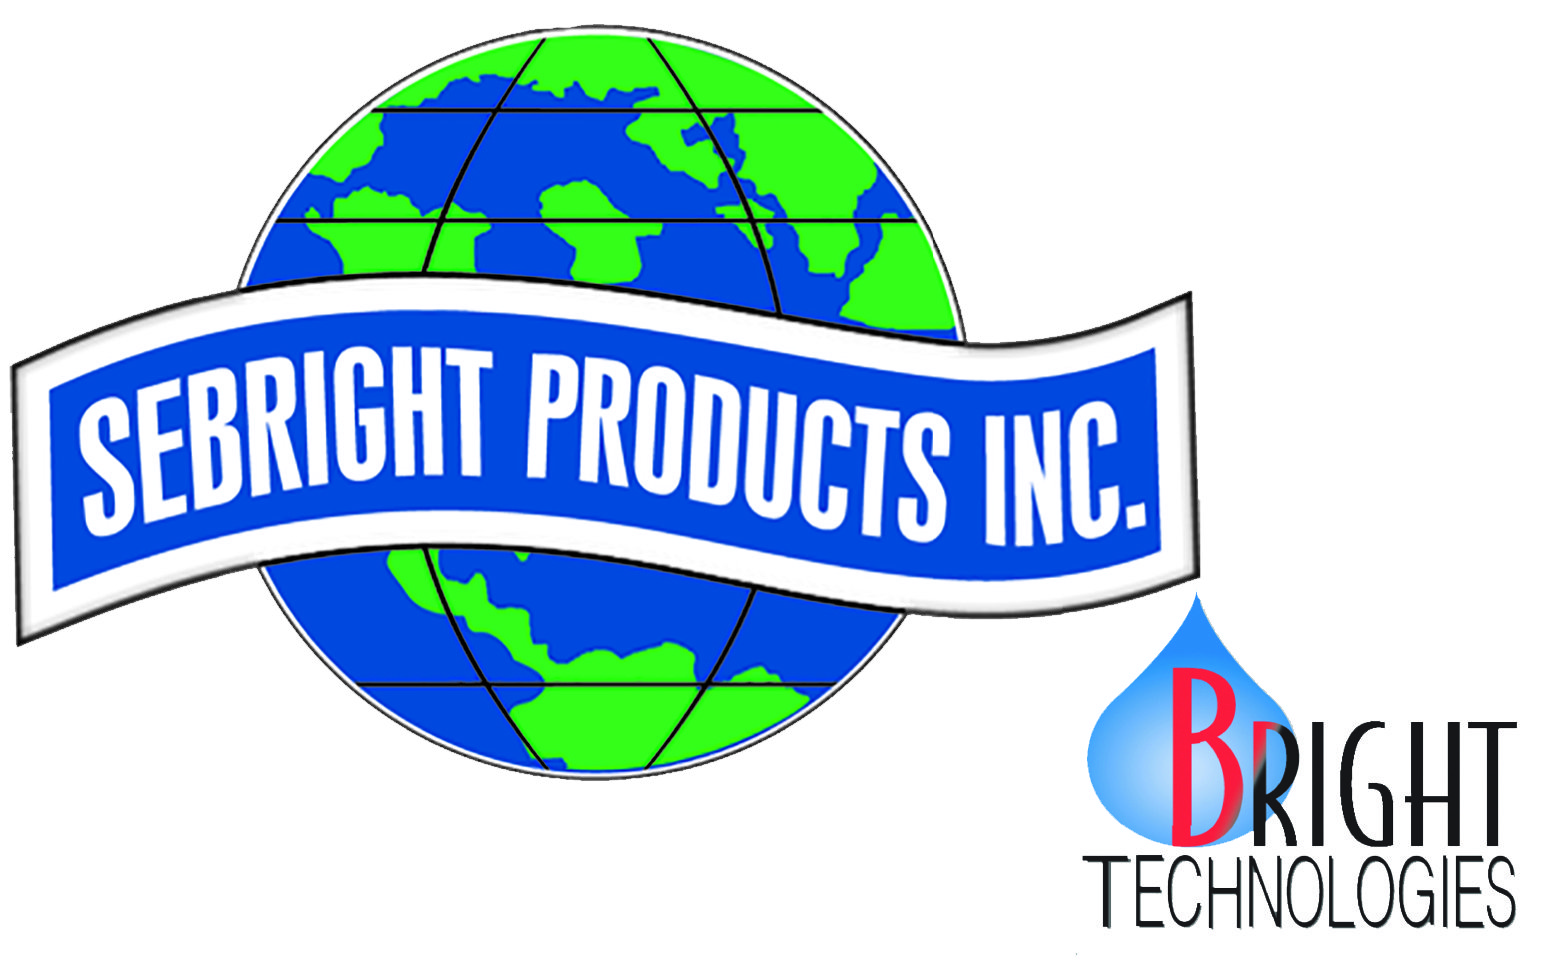 Sebright Products -Bright Technologies